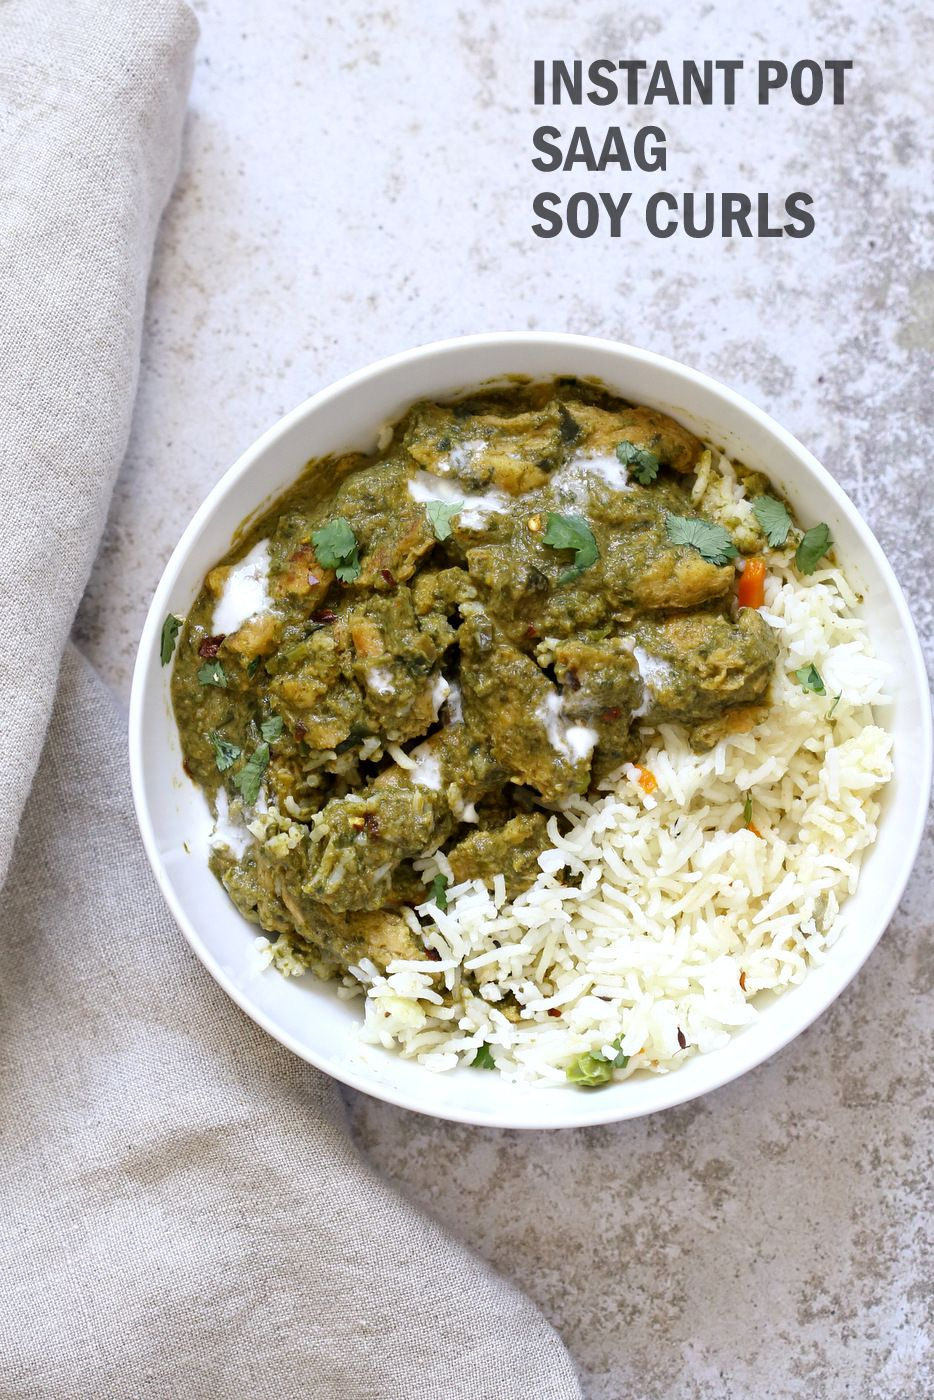 Instant Pot Vegan Chicken Saag Soy Curls In Spinach Sauce Vegan Richa Recipe Soy Curls Vegan Instant Pot Recipes Vegan Richa